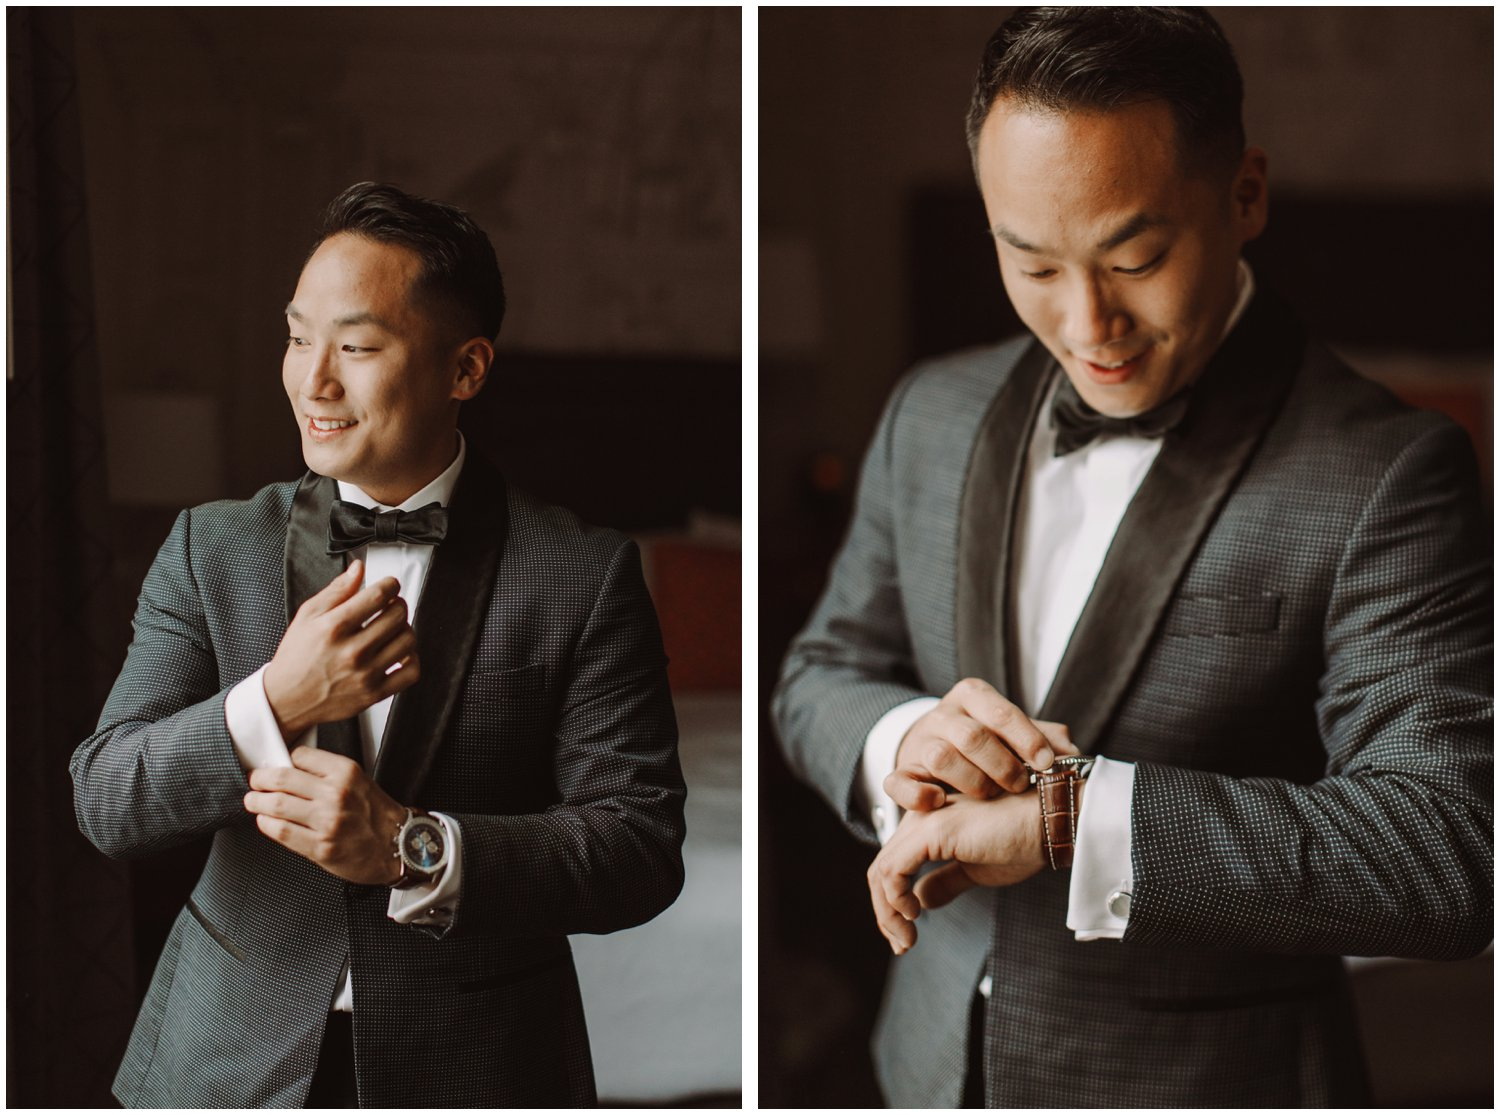 Peabody Library Wedding | Hotel Revival Baltimore Wedding | Art Deco Wedding | Baltimore City Wedding | Kate Ann Photography | Groom Getting Ready Portraits